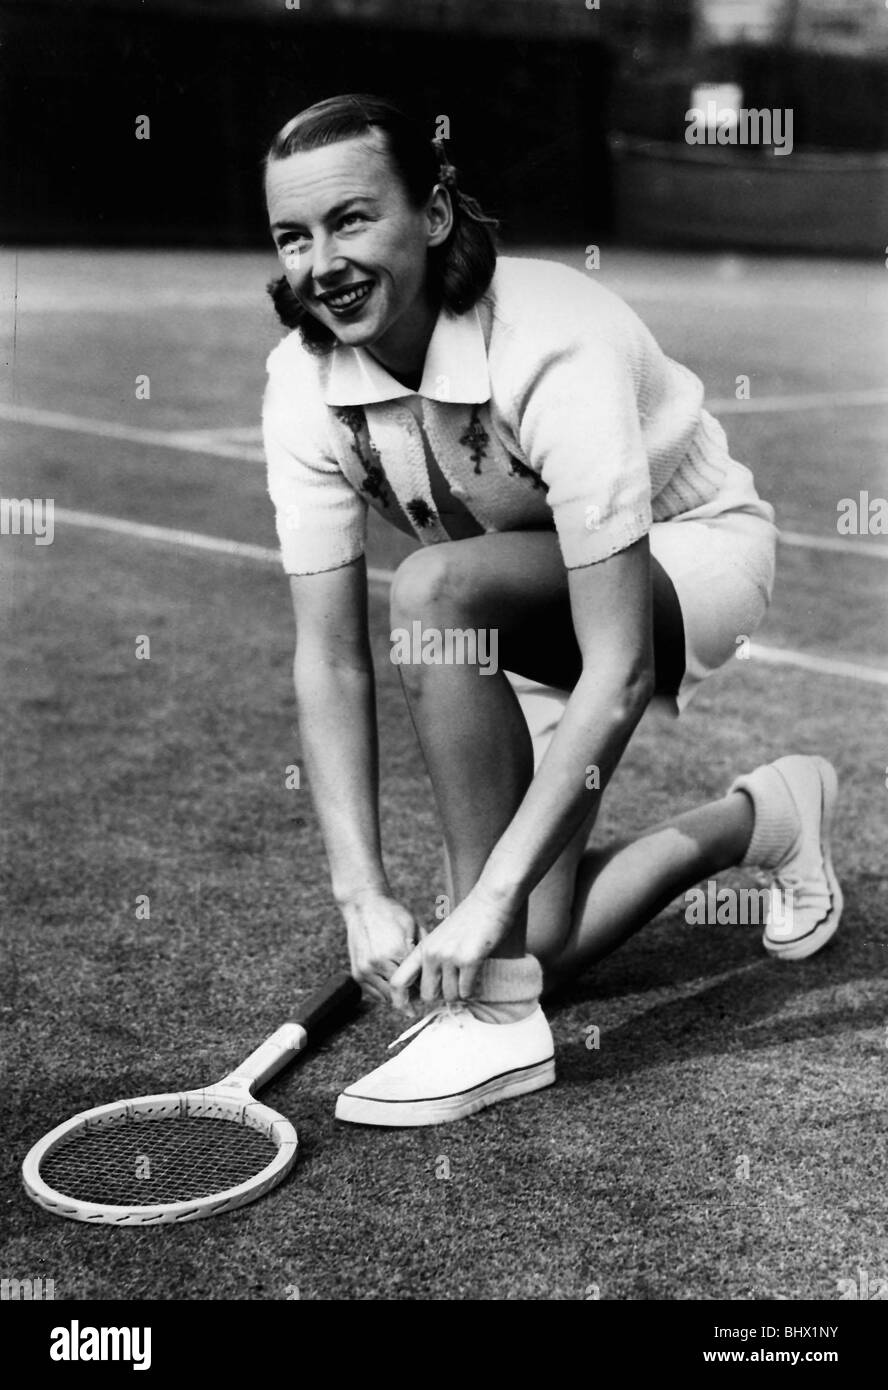 Gussie Moran playing tennis at Queens Club September 1949 adjusting her tennis shoes before a match Gertrude Moran - Stock Image